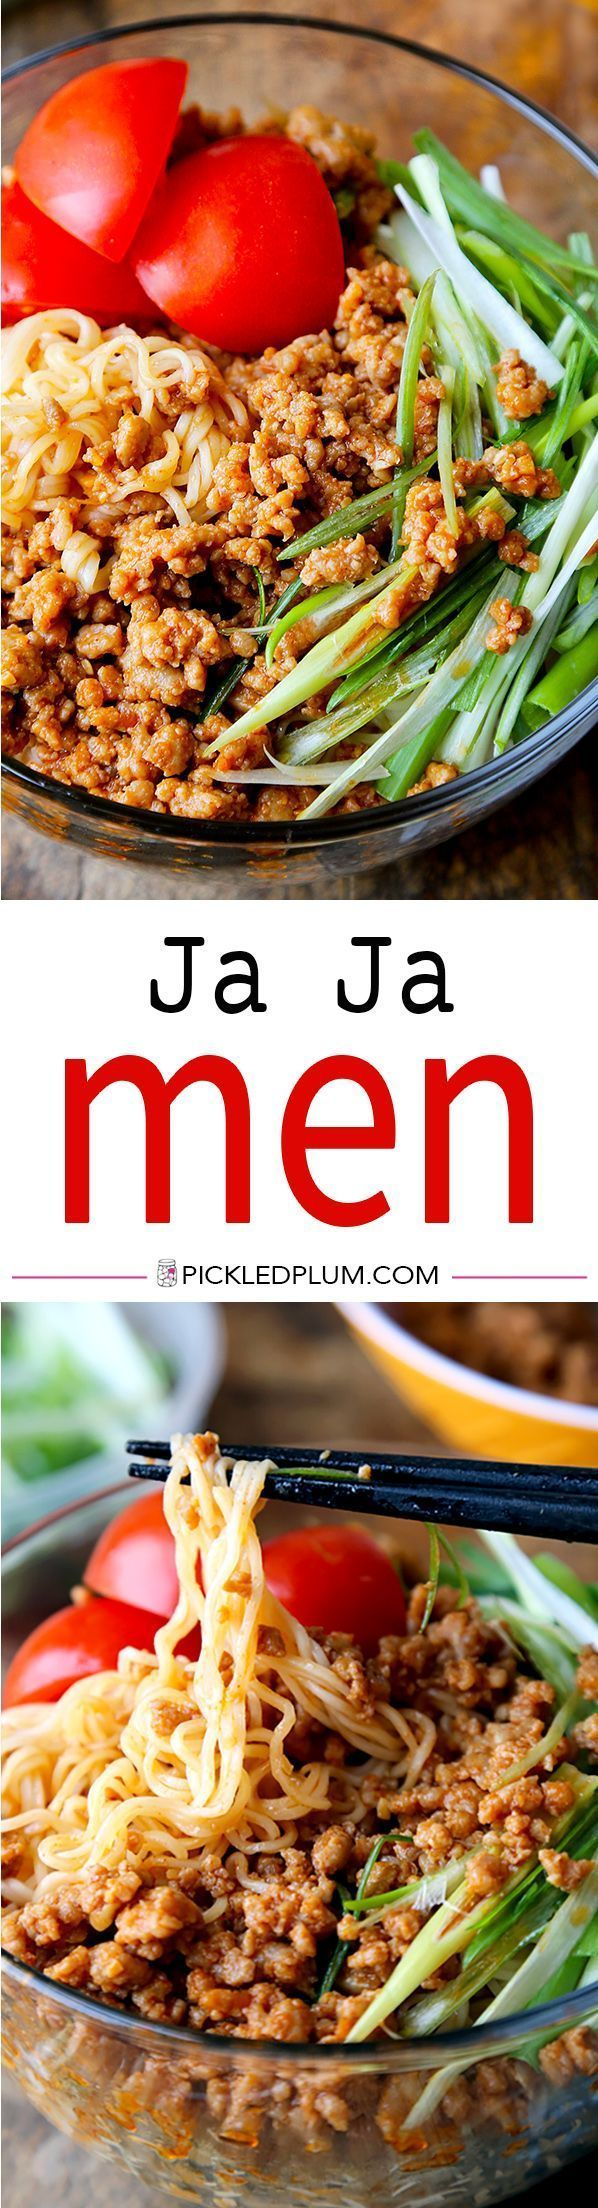 """Ja ja men - spicy ground pork cooked in a salty and spicy sauce served with ramen noodles, scallions and cherry tomatoes. We love this for a tasty and speedy lunch! Recipe, noodles, easy, Japanese.   <a href="""""""" rel=""""nofollow"""" target=""""_blank""""></a>"""